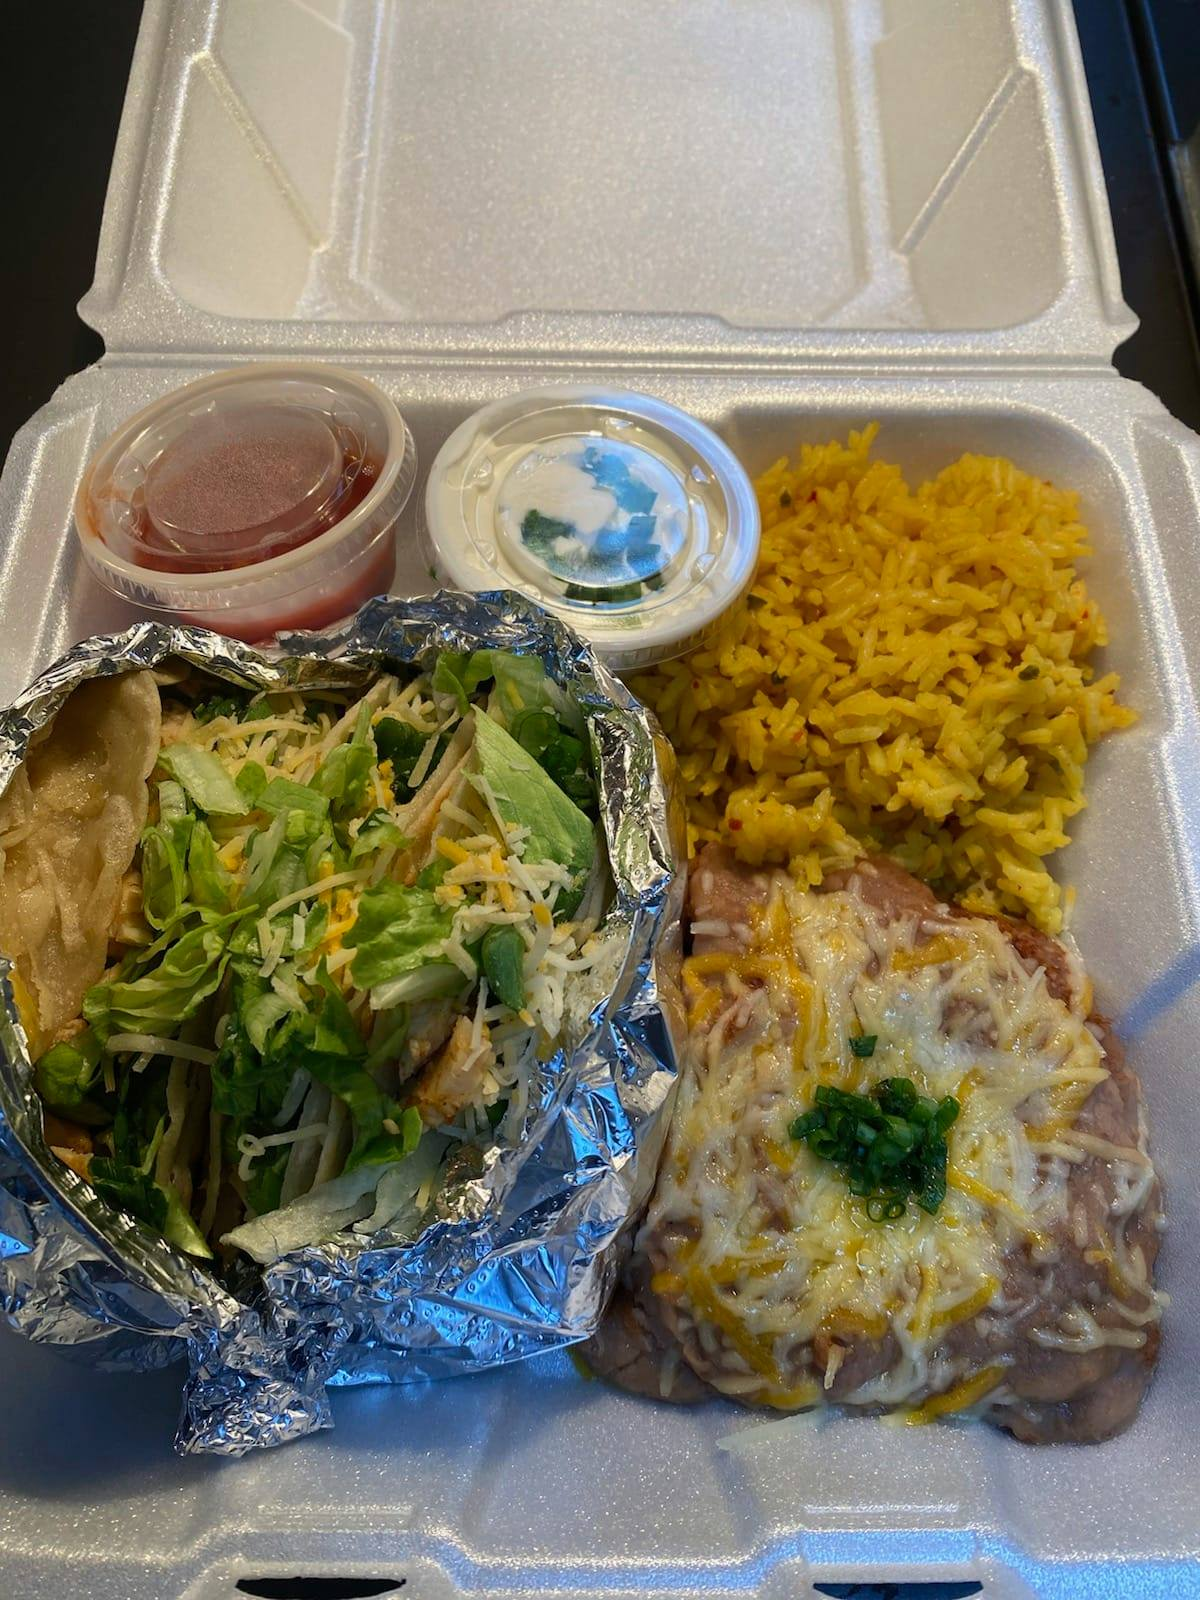 One meal from Rodney's Cafe Meal-A-Thon program in Oshkosh